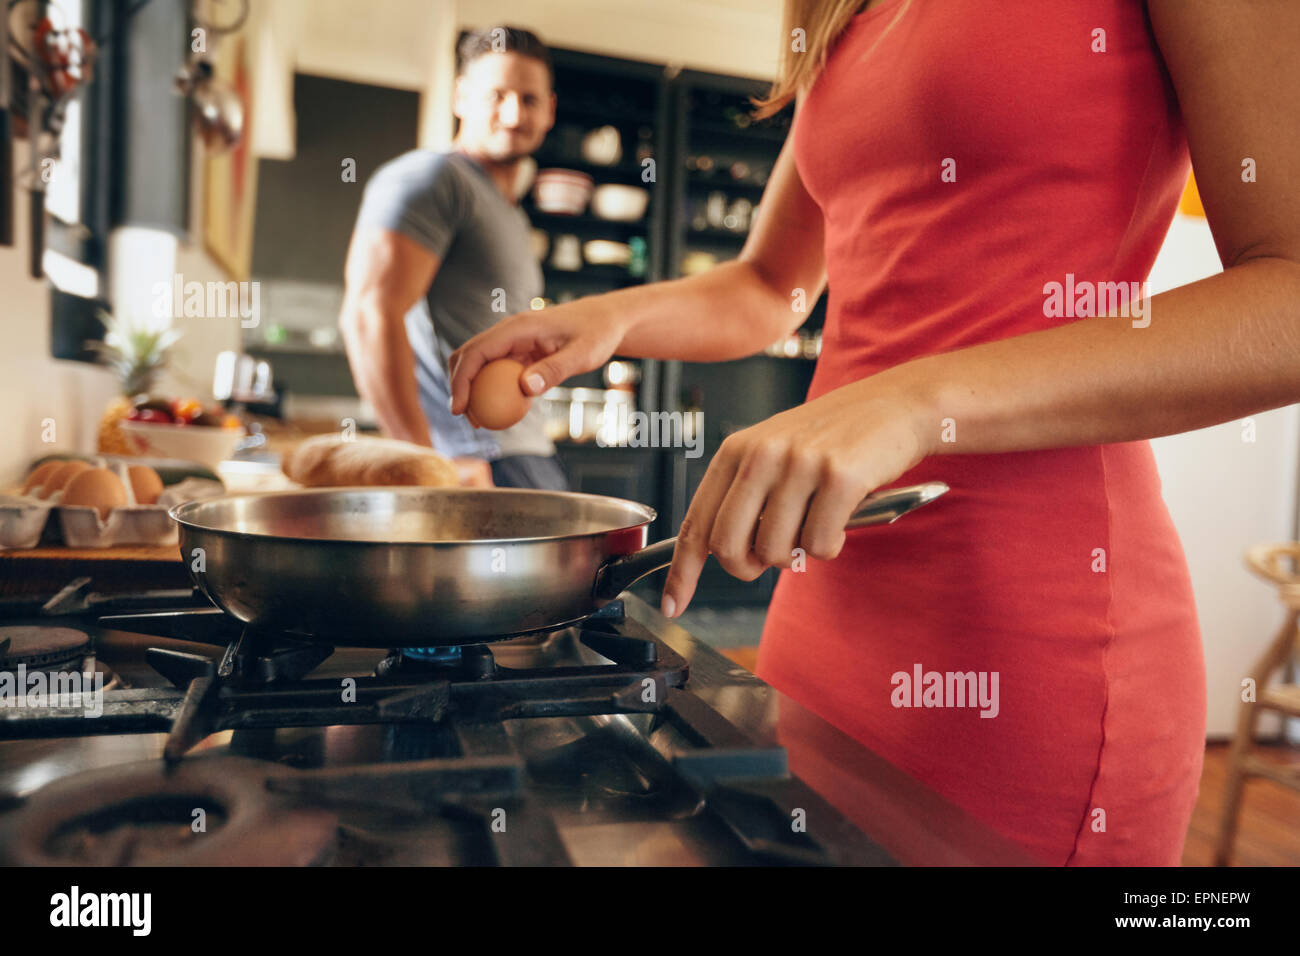 Closeup image of woman cracking an egg into a frying pan with man standing in background in kitchen. Preparing breakfast. - Stock Image